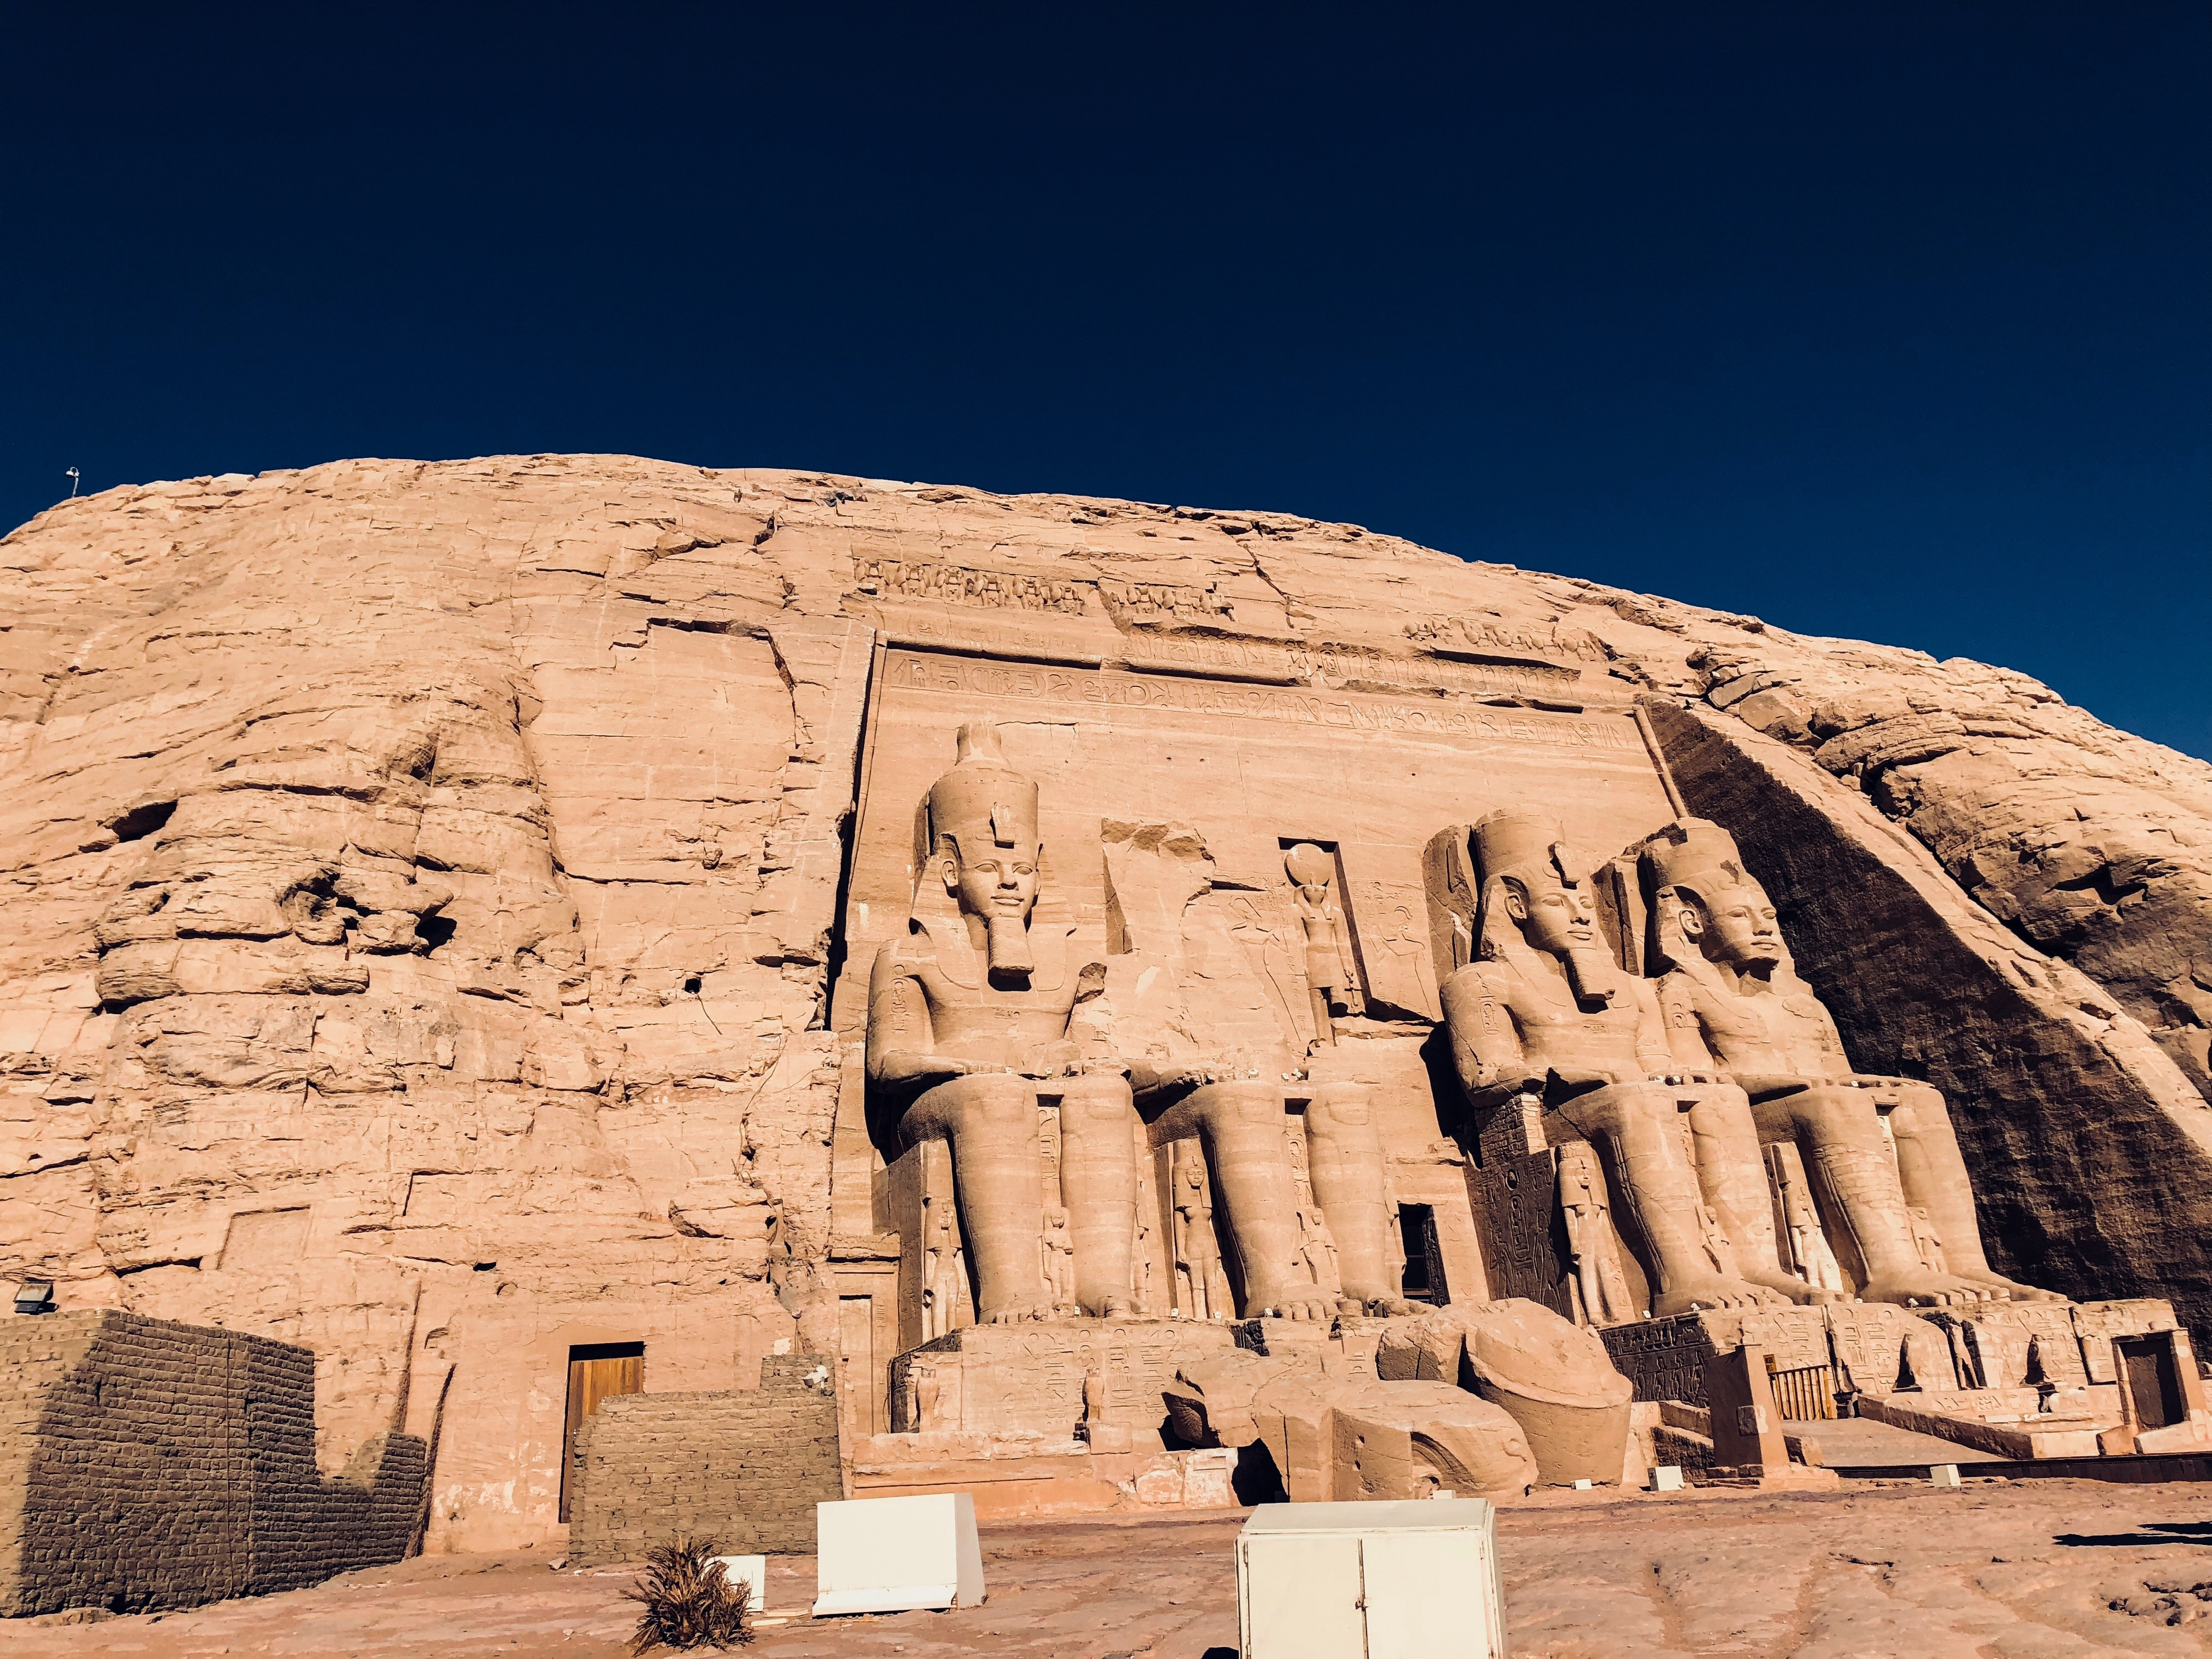 landscape photography of pharaoh statues